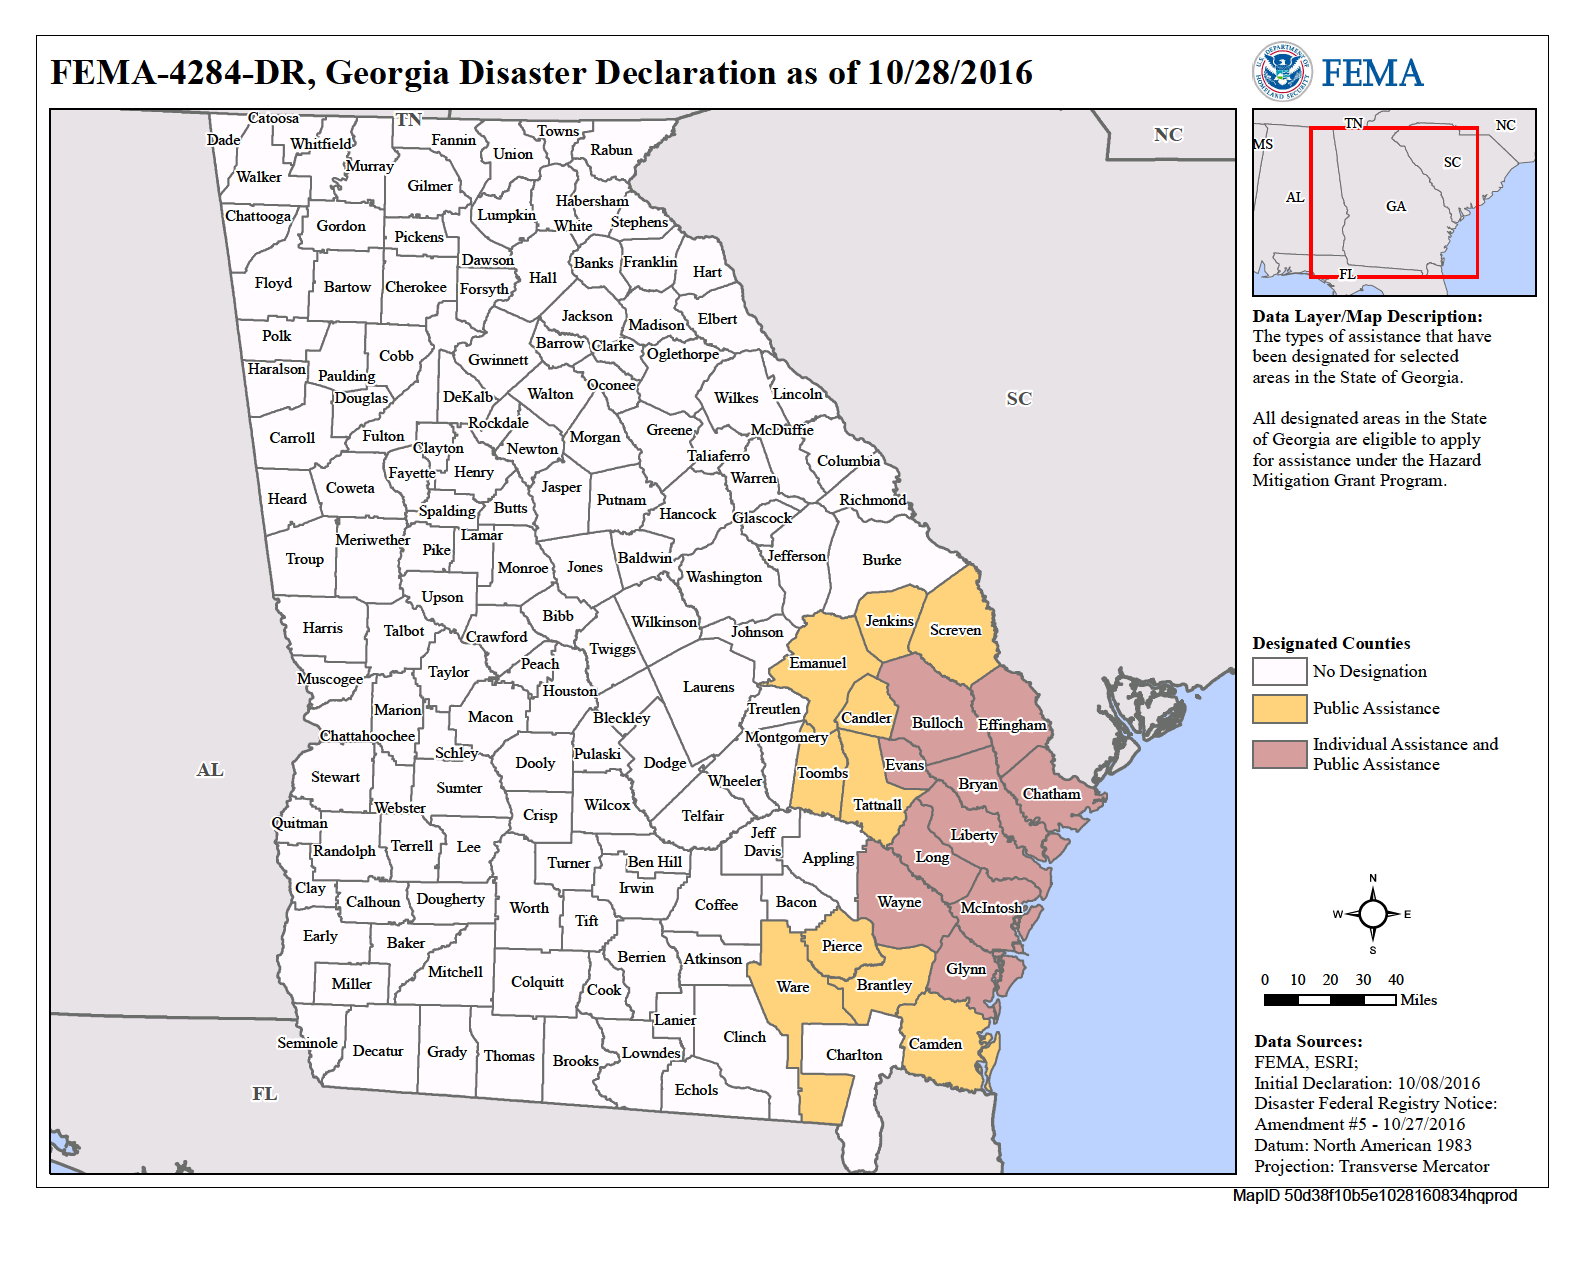 Georgia Hurricane Matthew DR FEMAgov - Georgia map hurricane